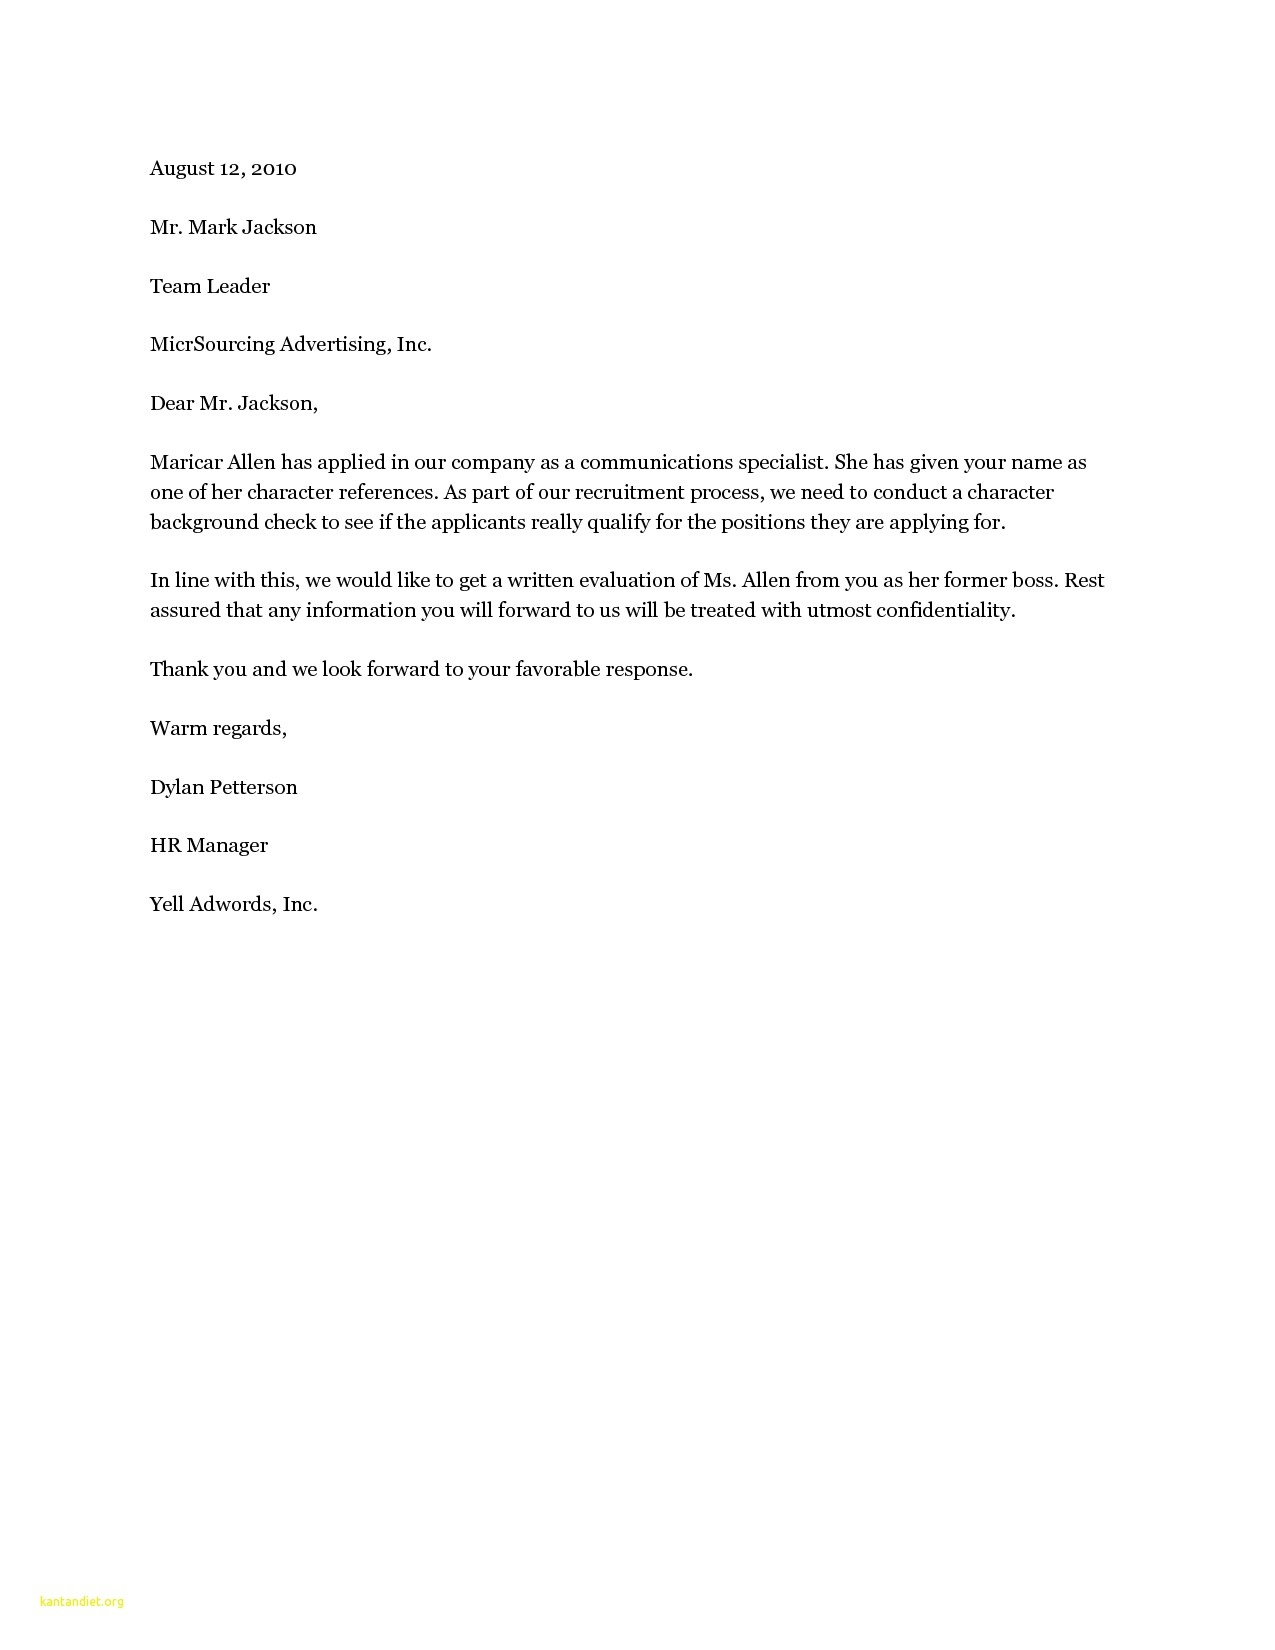 Personal Character Reference Letter Template - Dear Hiring Manager Cover Letter Sample 19 Cover Letter Template